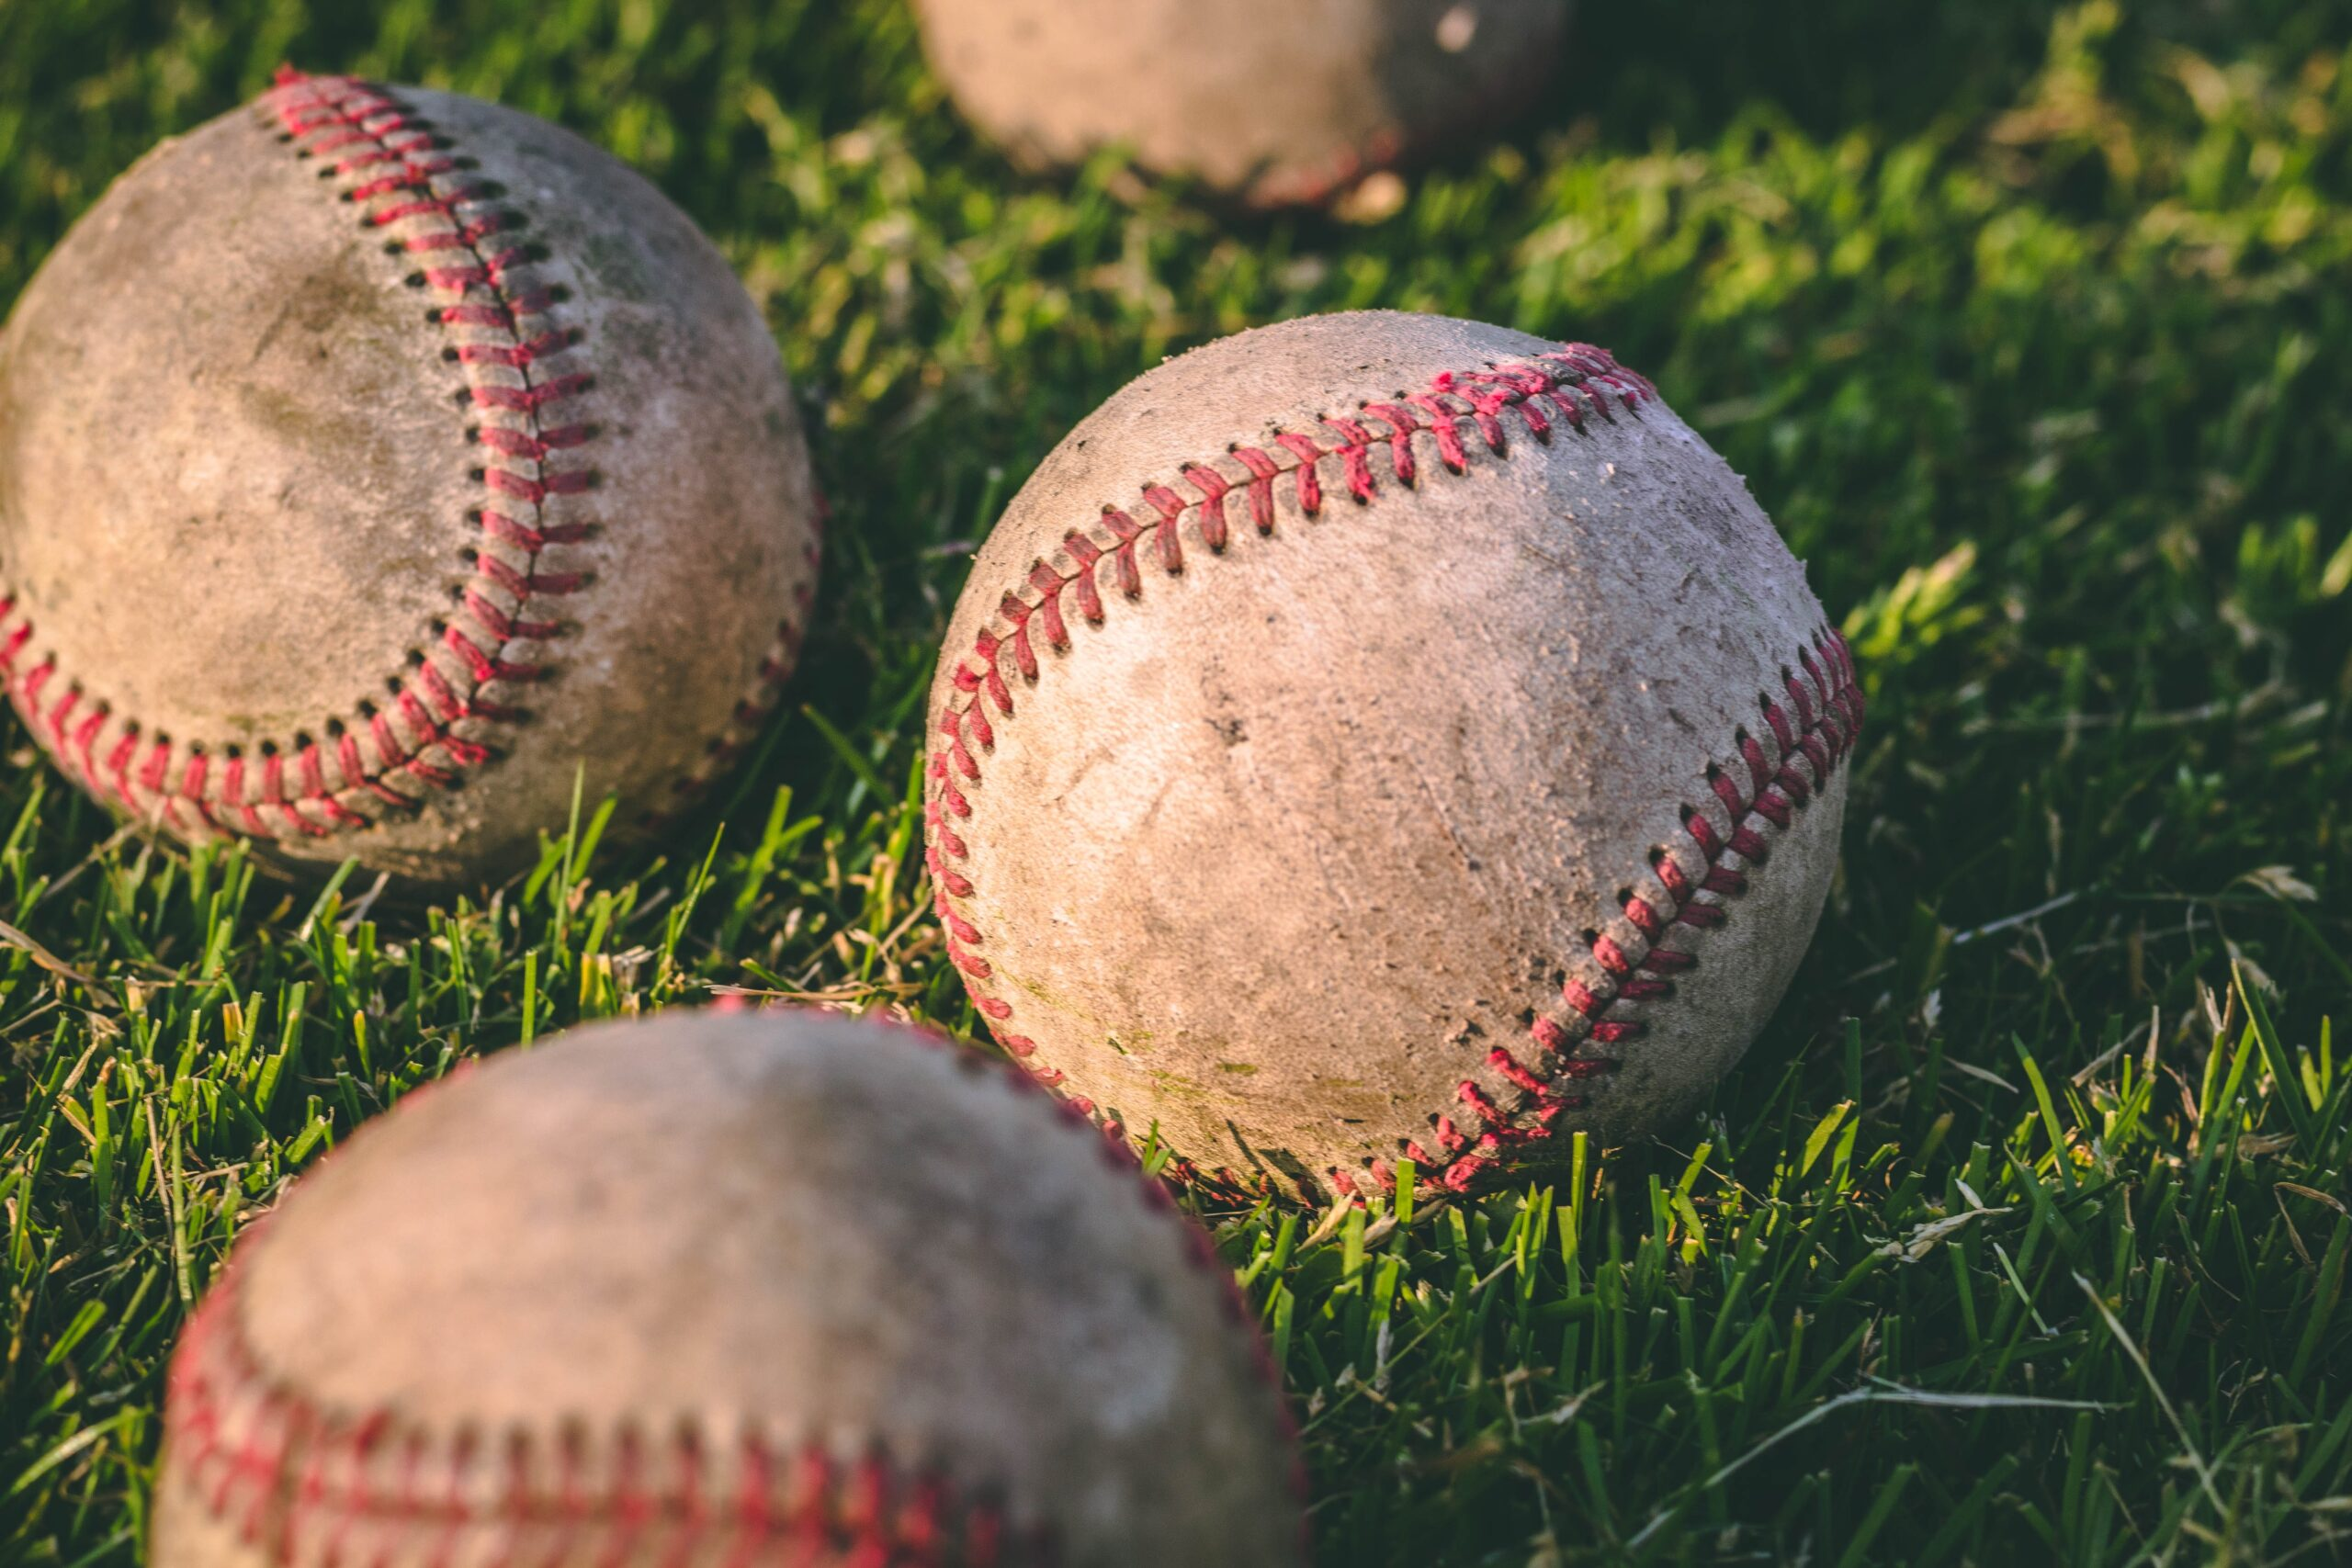 The Power of Sports: ALDS Game 3, by Gabe Stoesz